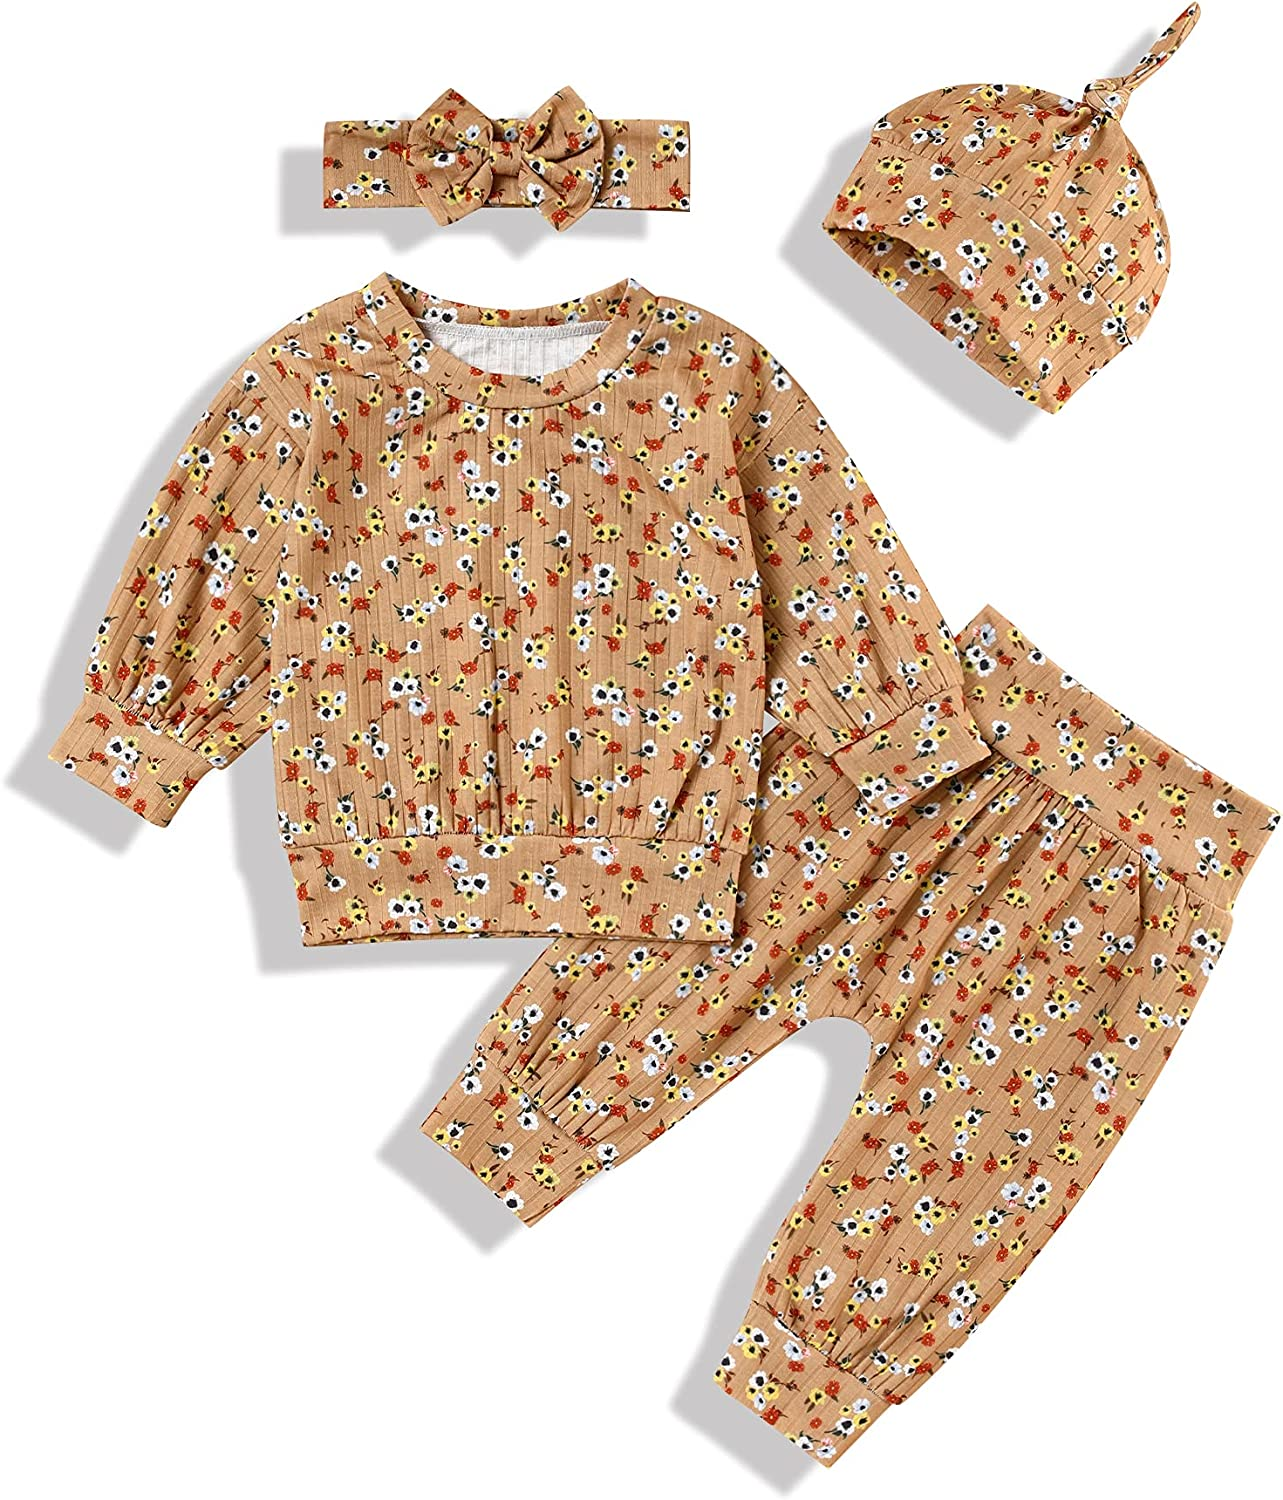 Newborn Baby Girl Boy Clothes Girl Floral Long Sleeve Top Cute Pant+Headband+Hat 4Pcs Winter Outfit Set